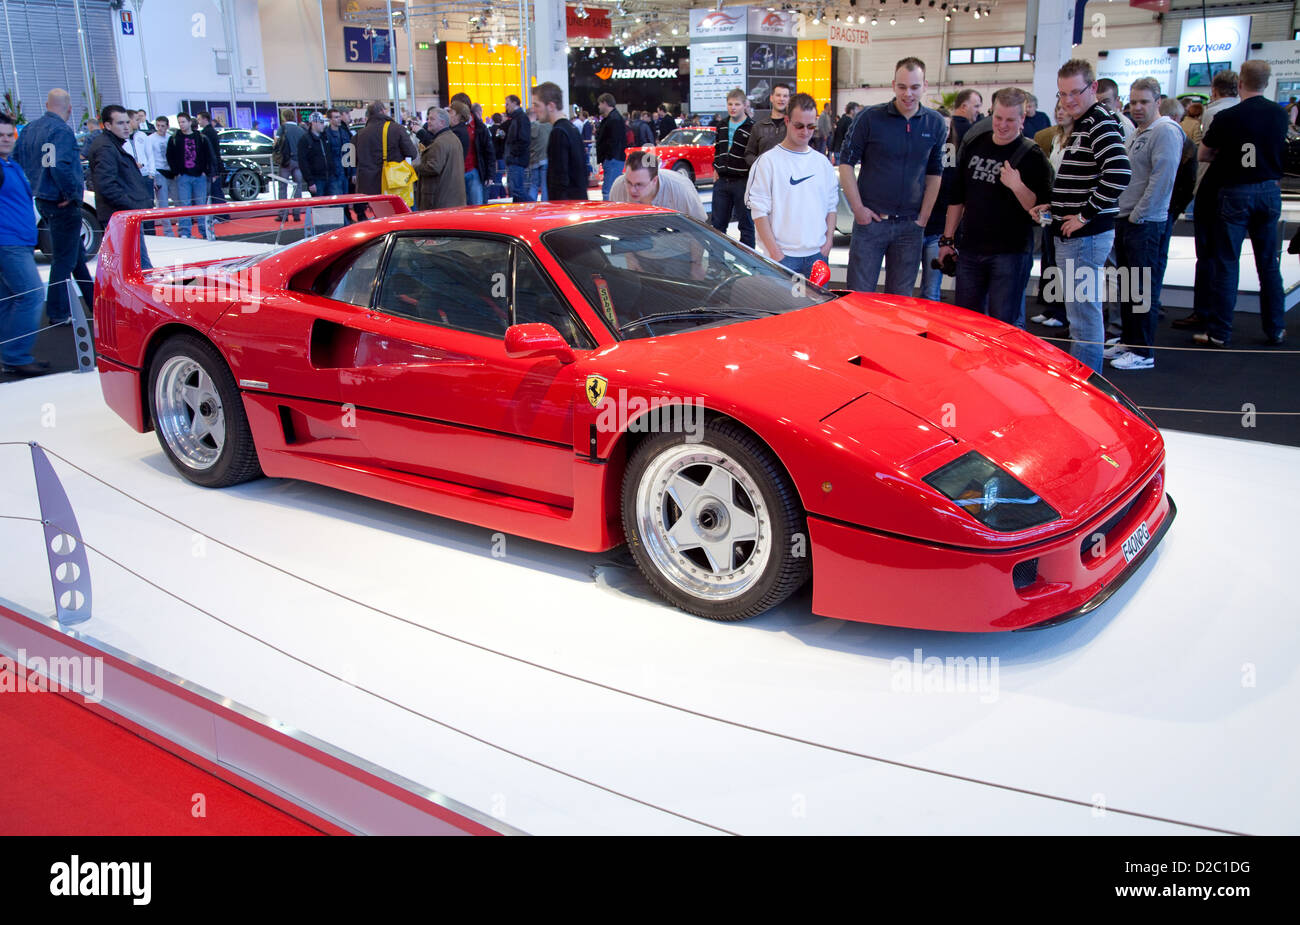 Essen, Germany, Ferrari 250 GTO at the Messe Essen Motor Show - Stock Image